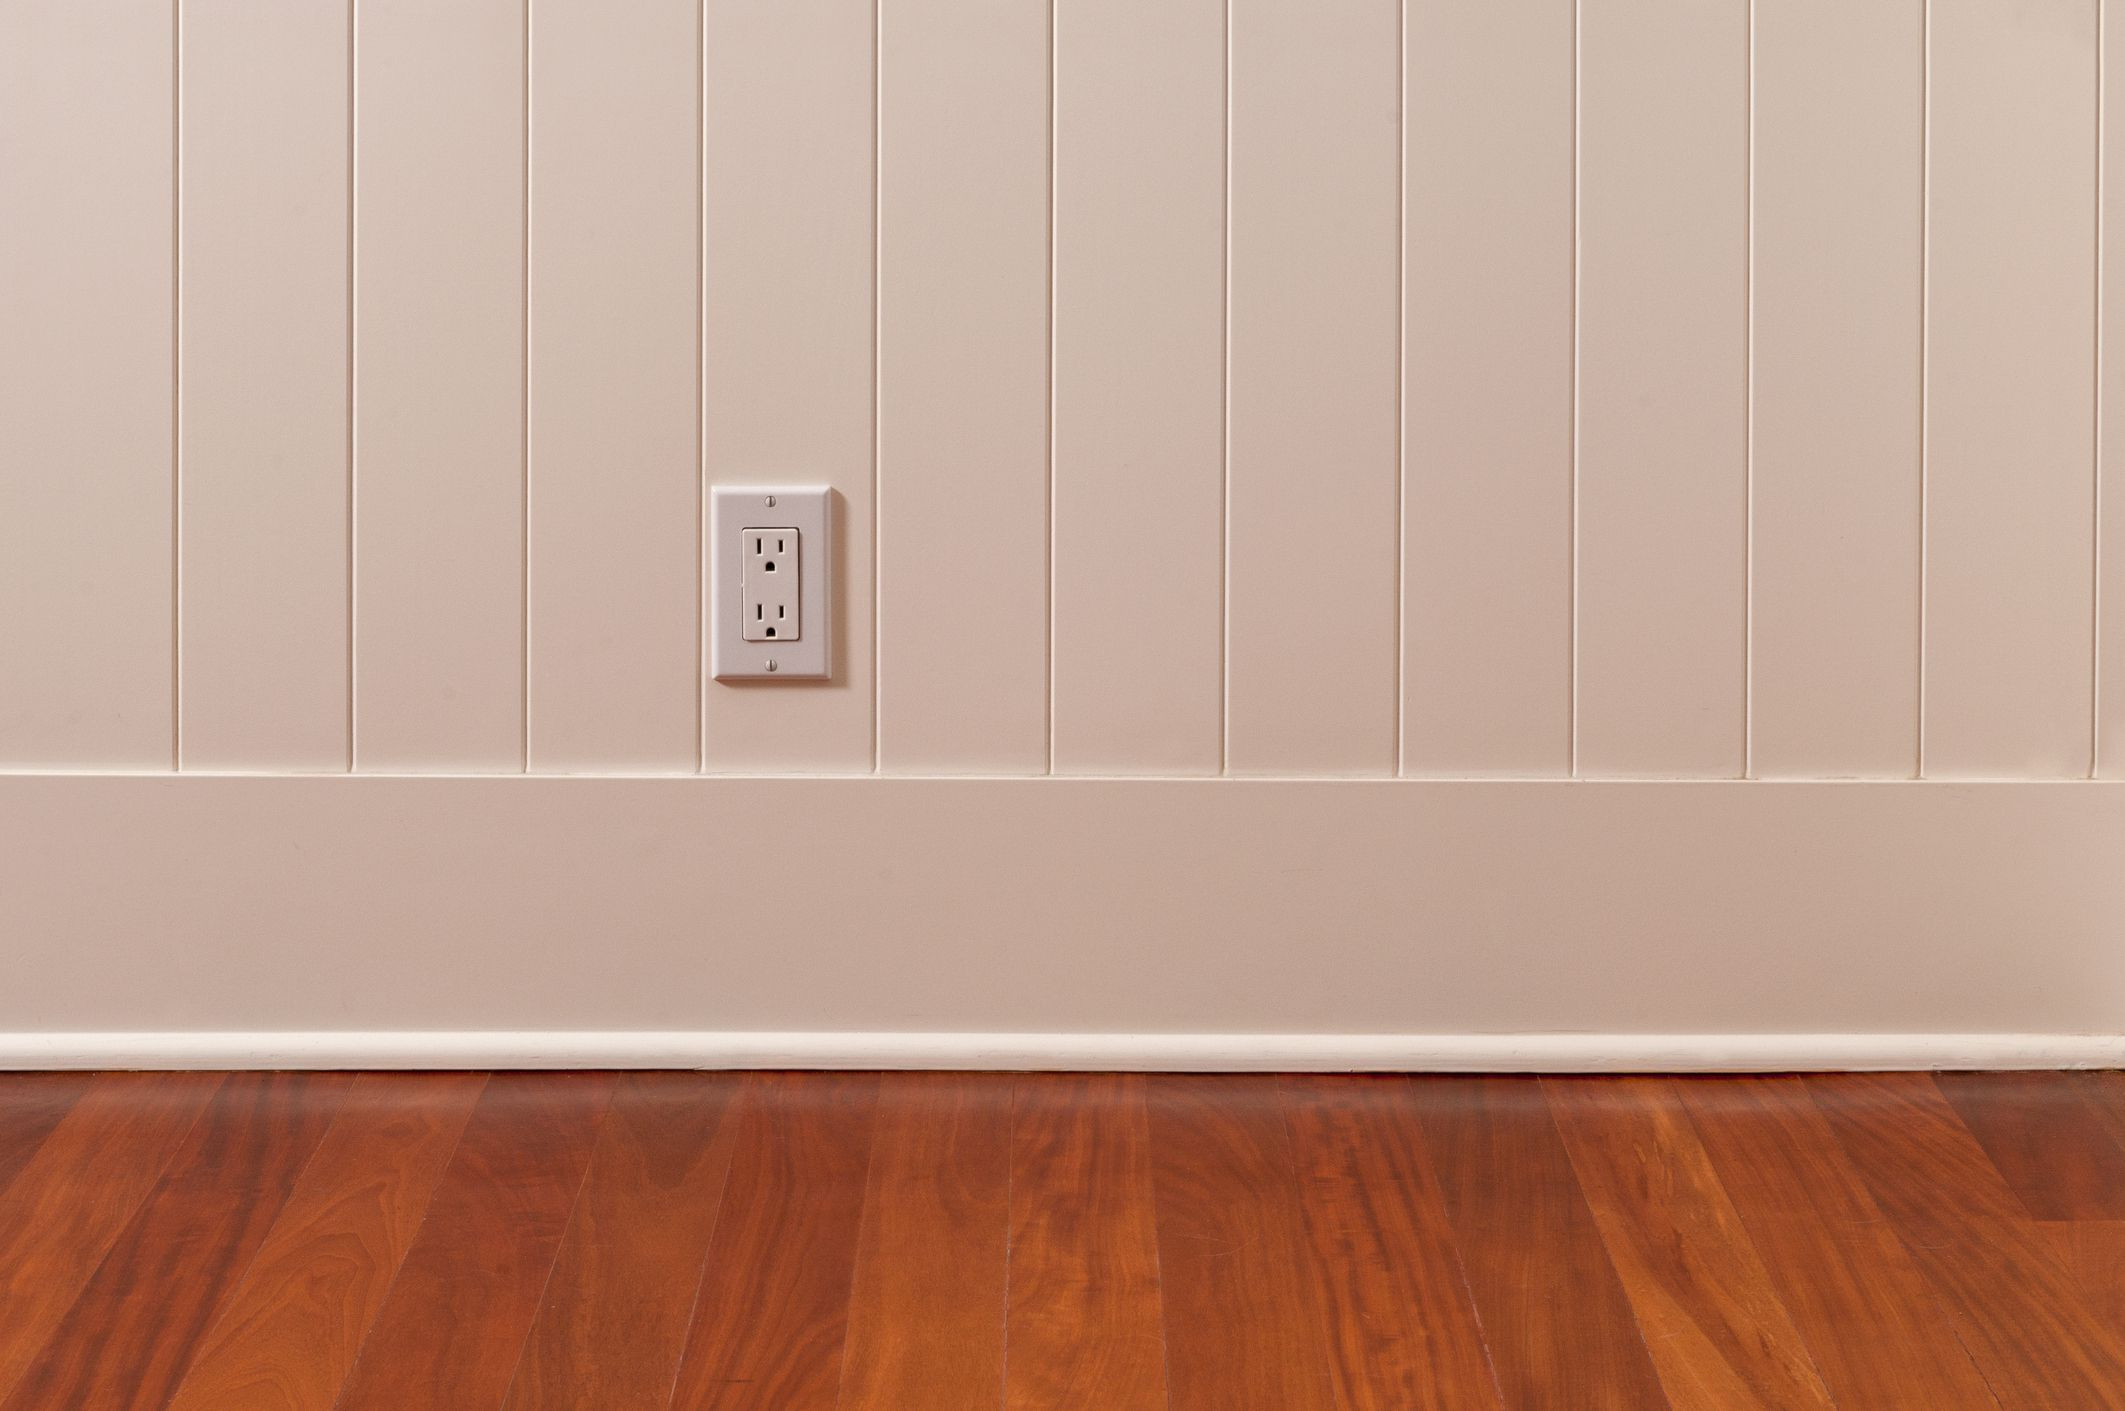 hardwood floor trim installation of wood and mdf baseboards guide to purchasing and installing with quarter round installed on baseboard 164003254 57a500d85f9b58974a84b0f6